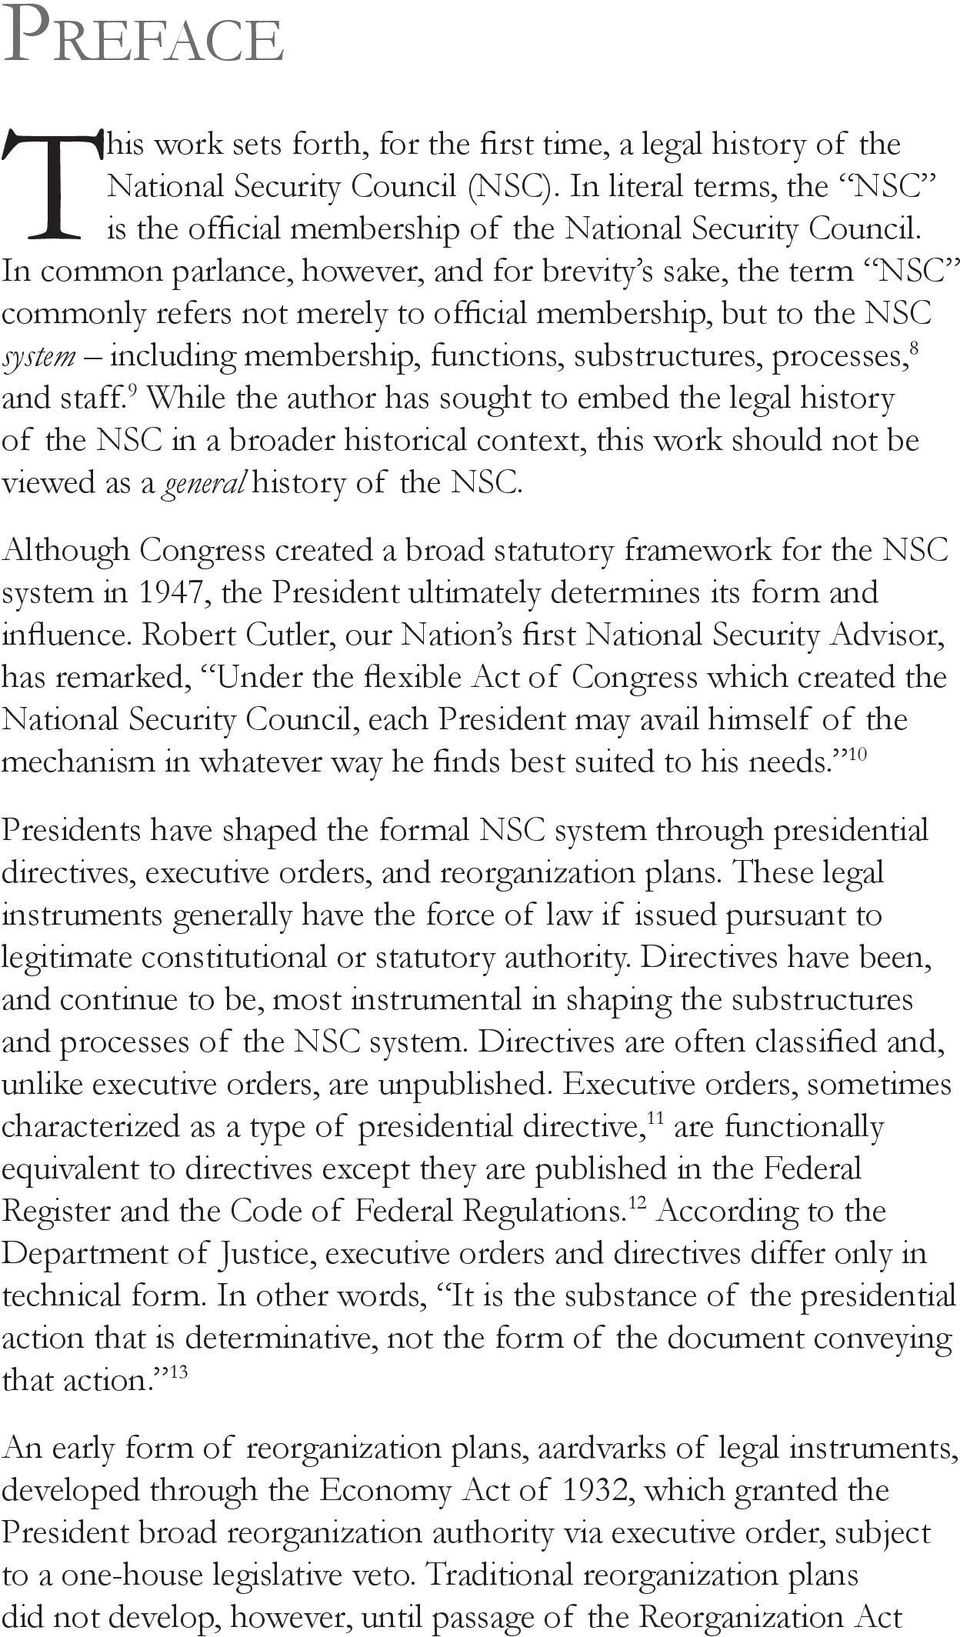 and staff. 9 While the author has sought to embed the legal history of the NSC in a broader historical context, this work should not be viewed as a general history of the NSC.